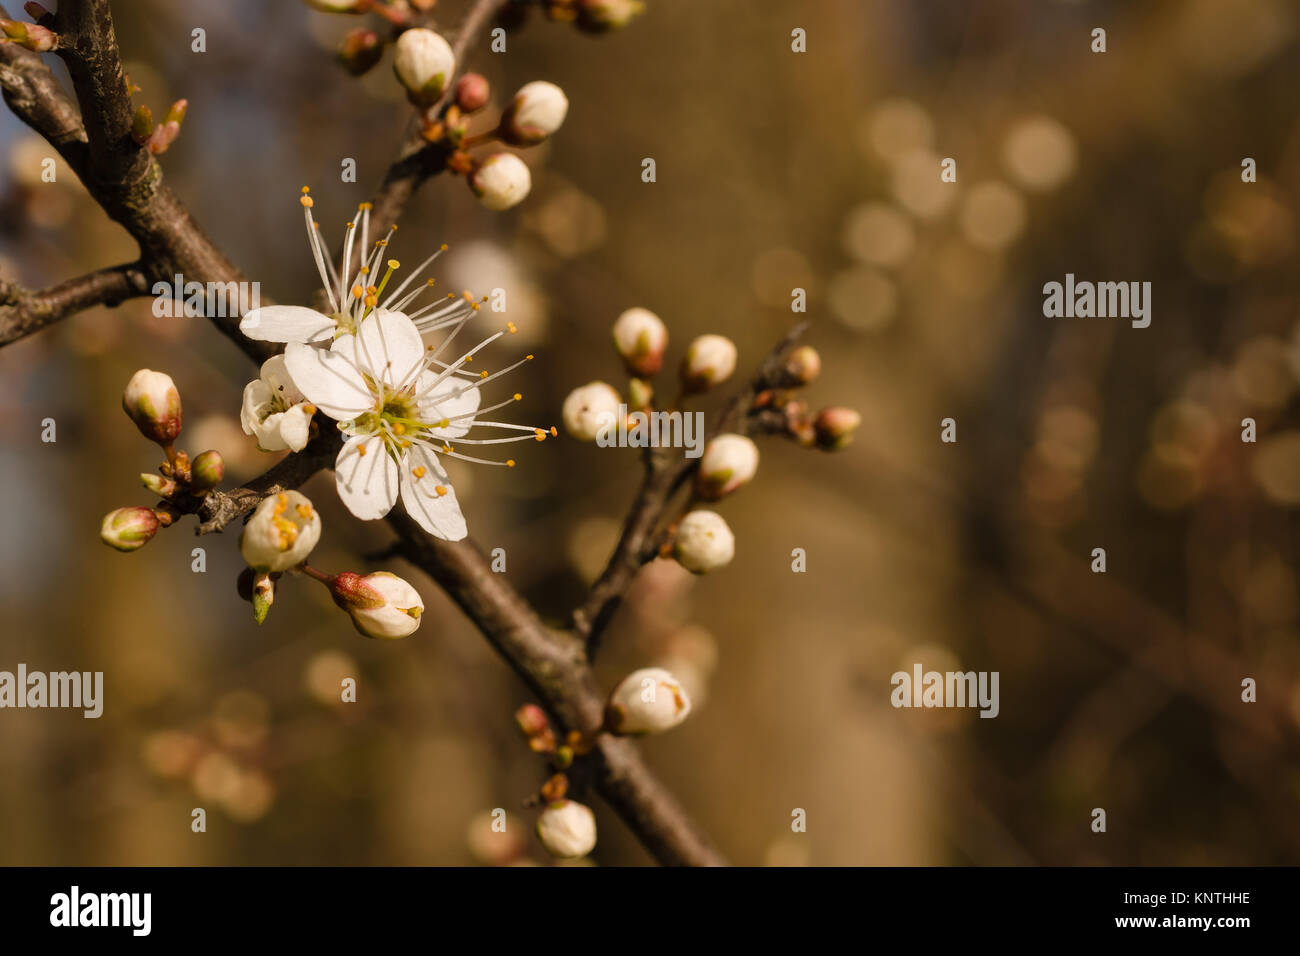 Blackthorn or prunus spinosa blossoms in late March a wild shrub native to the UK and Europe it produces sloe berries - Stock Image